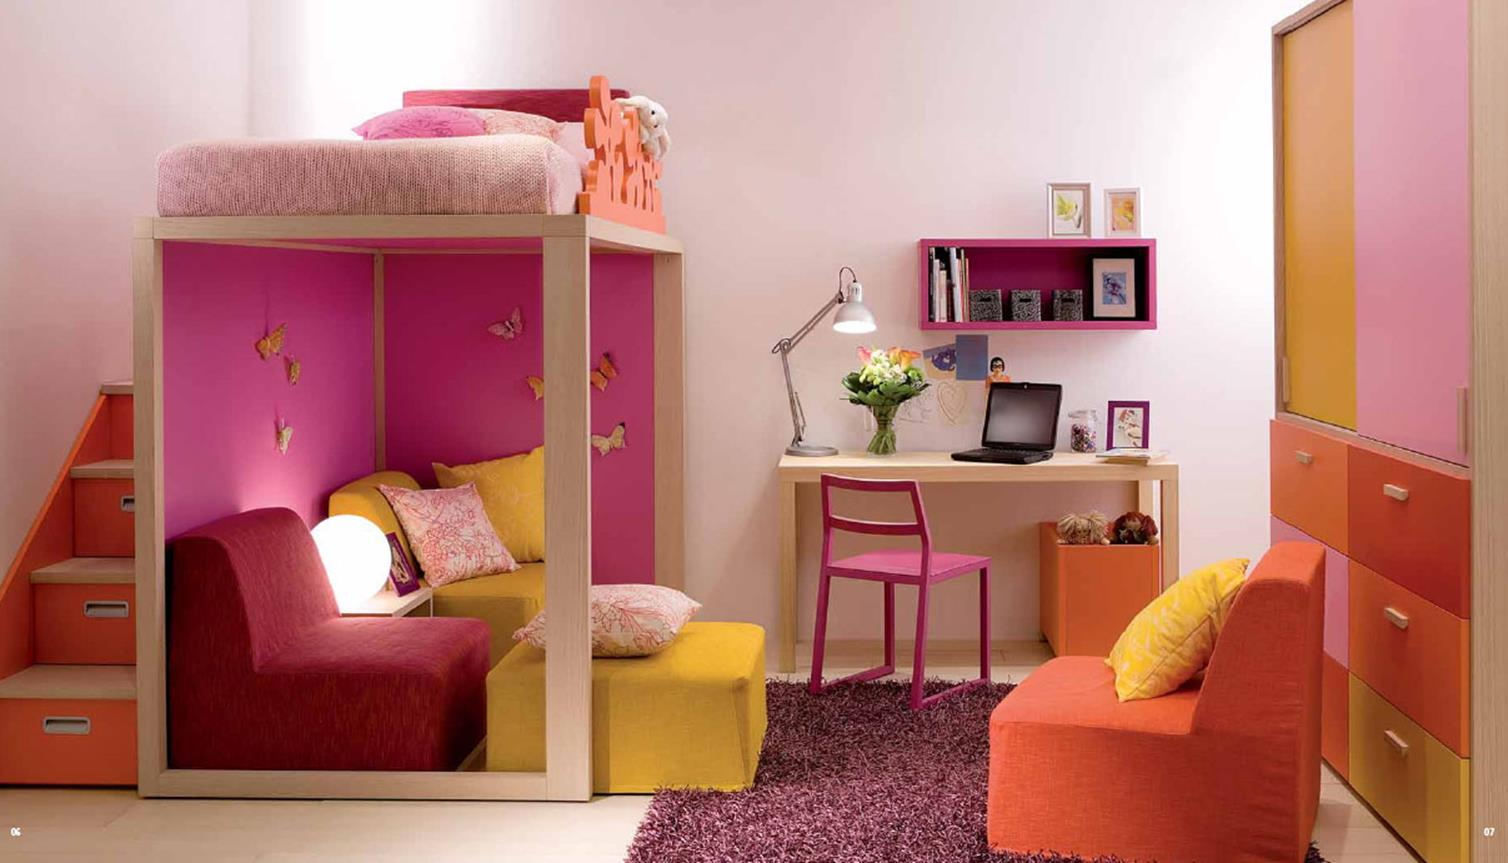 Color Full Kids Room Decorating Ideas On A Budget 2